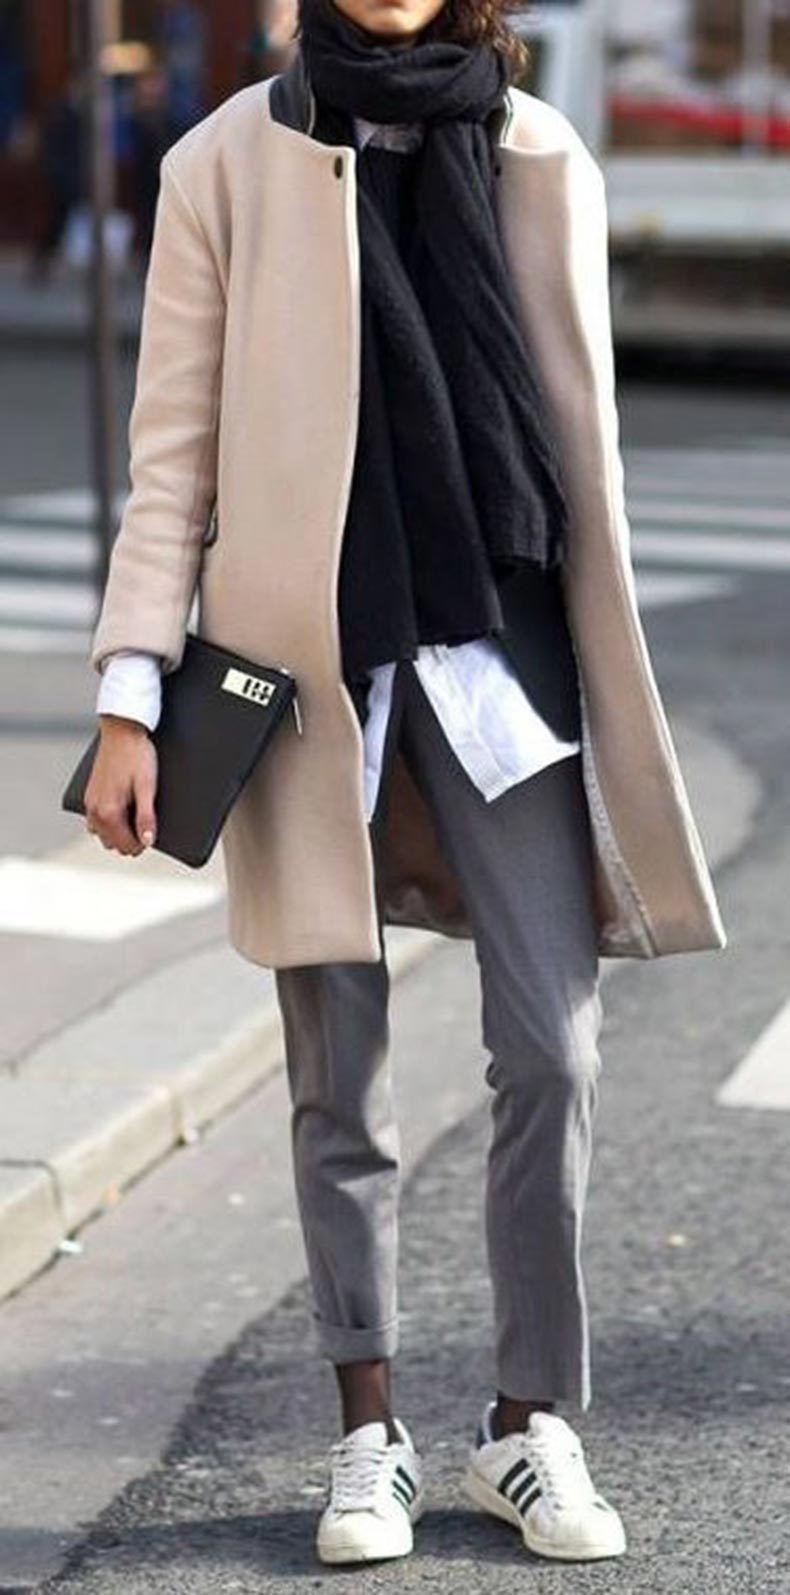 cool layered outfit idea / sneakers + grey pants + beige coat + scarf + shirt + clutch